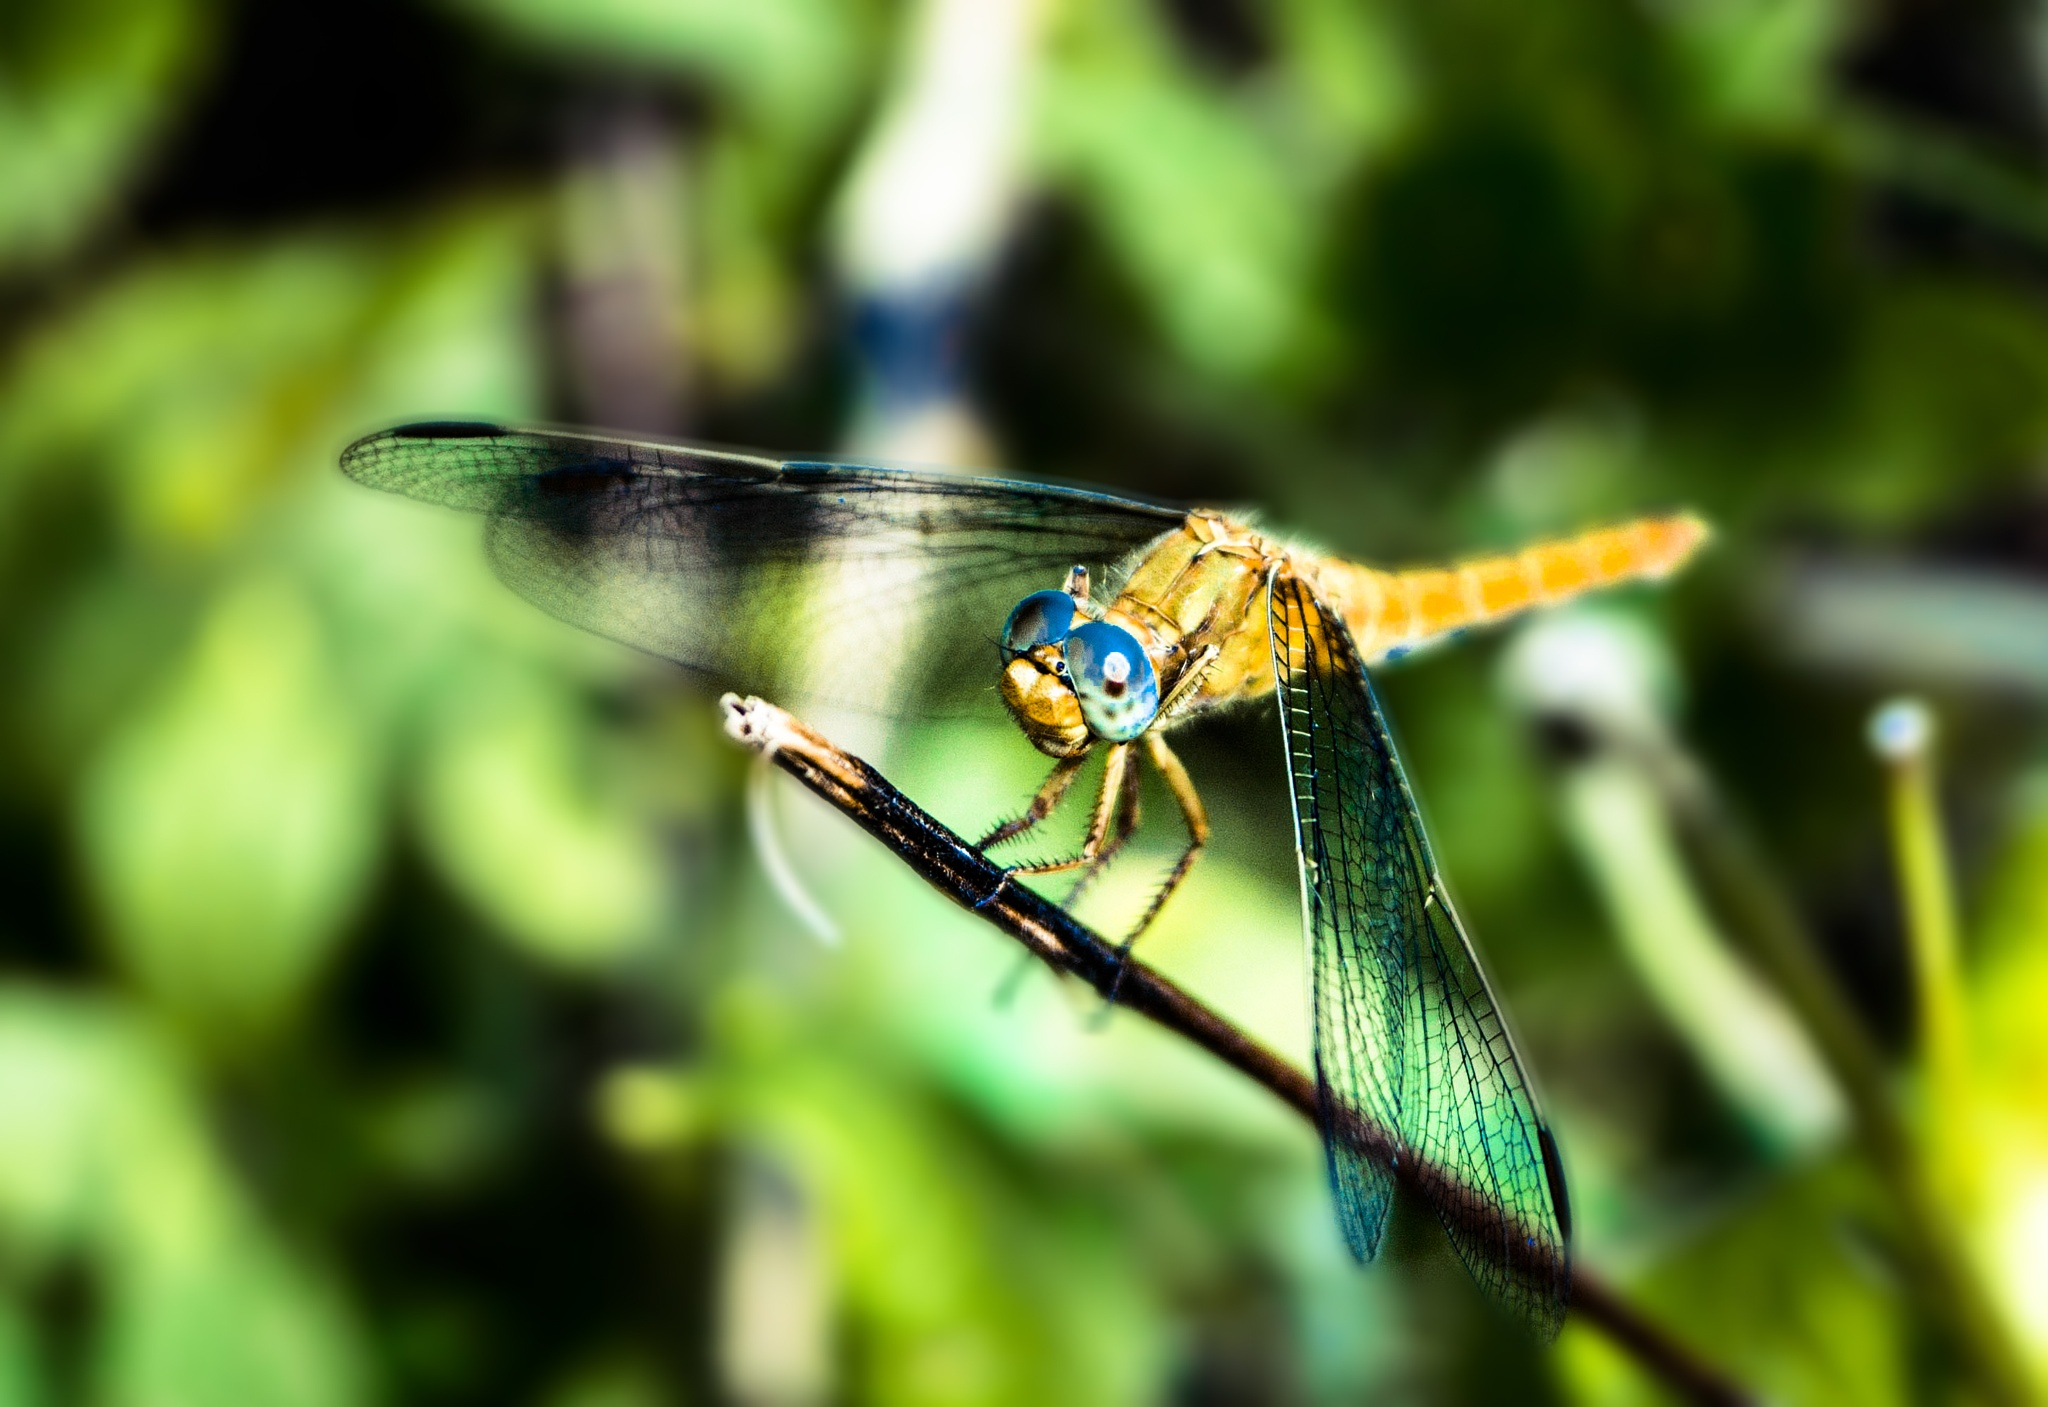 Dragonfly by Tamas Filep